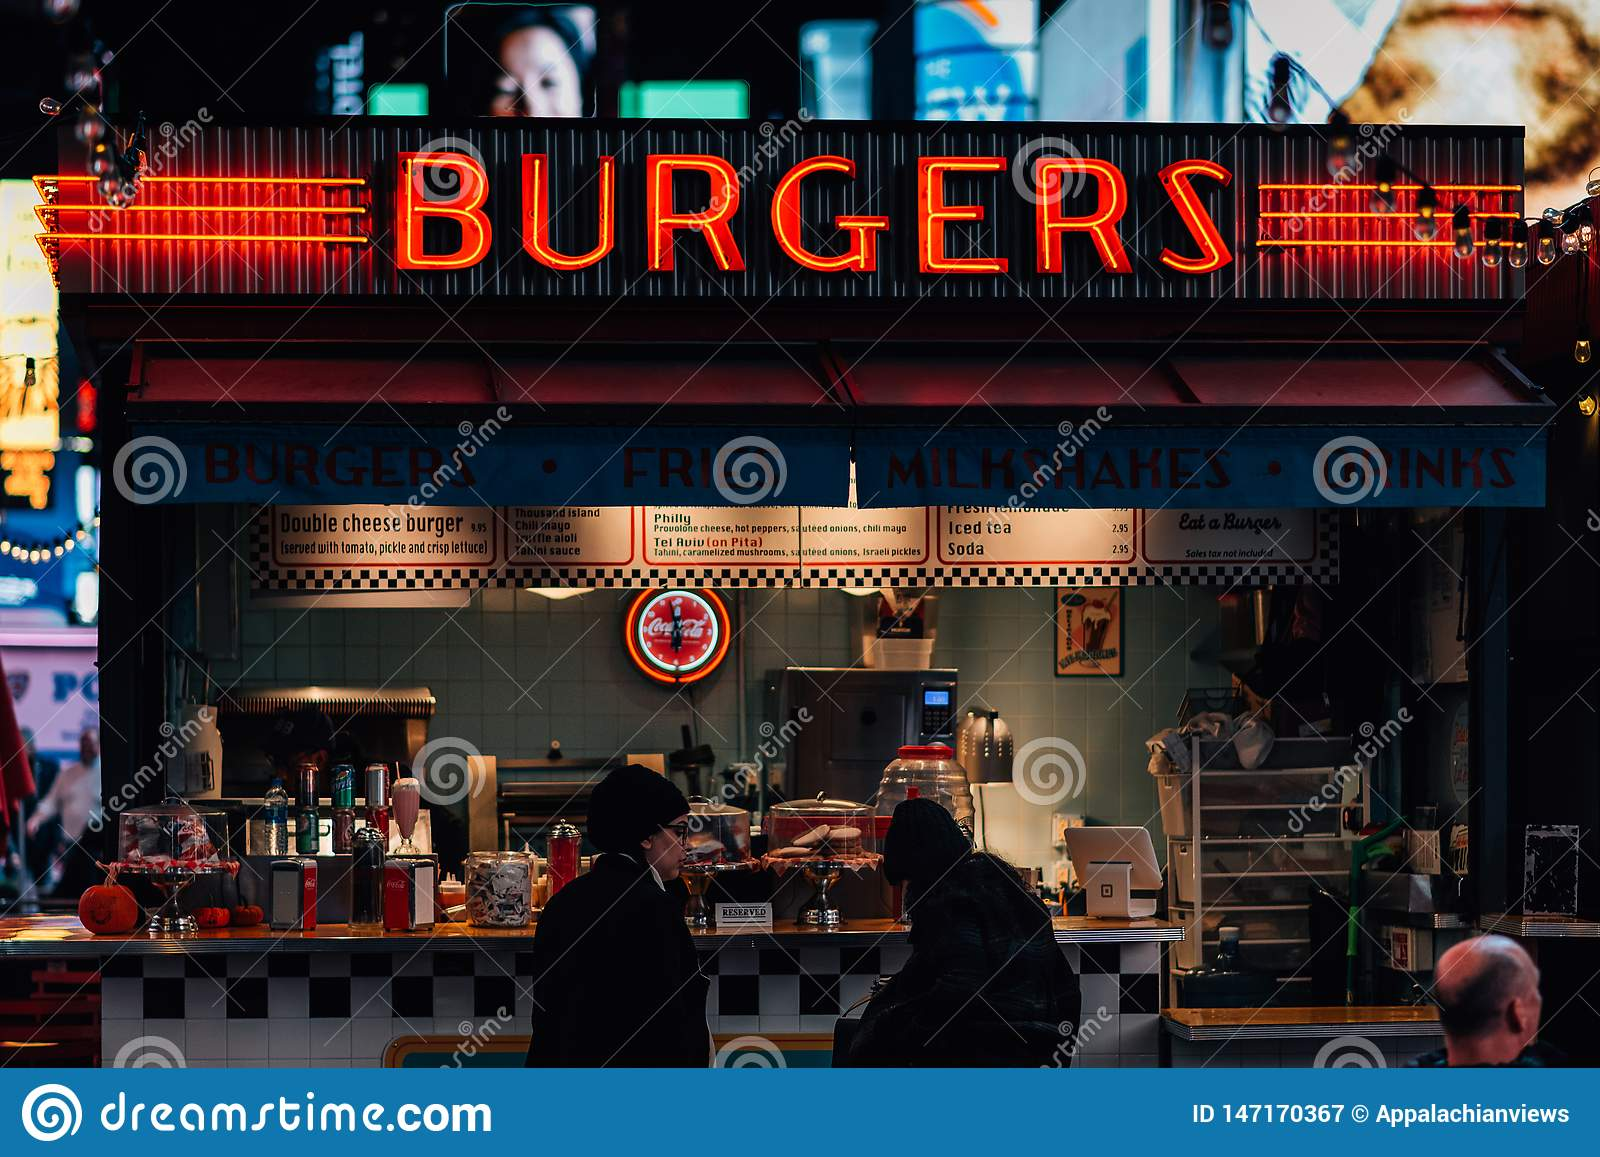 Burger Stand at Times Square, in Midtown Manhattan, New York City